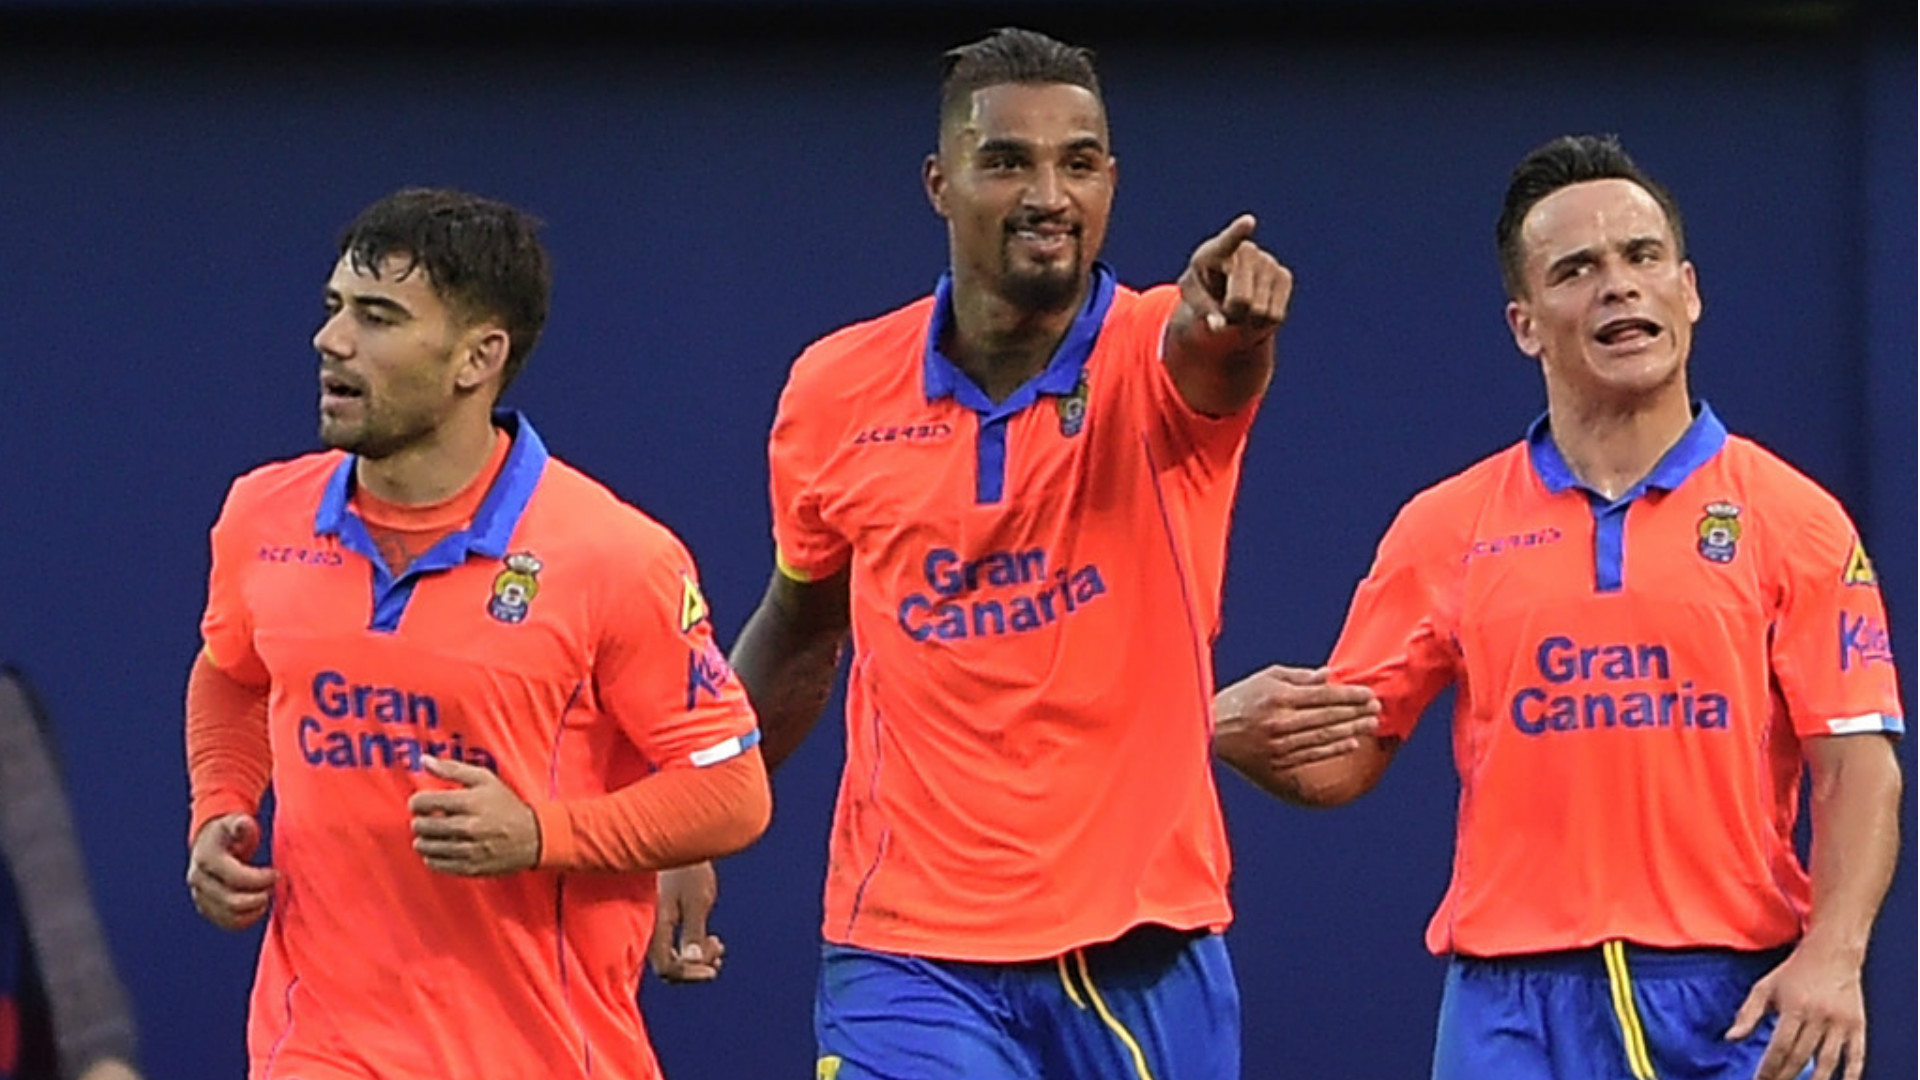 Kevin-Prince Boateng in action for Las Palmas